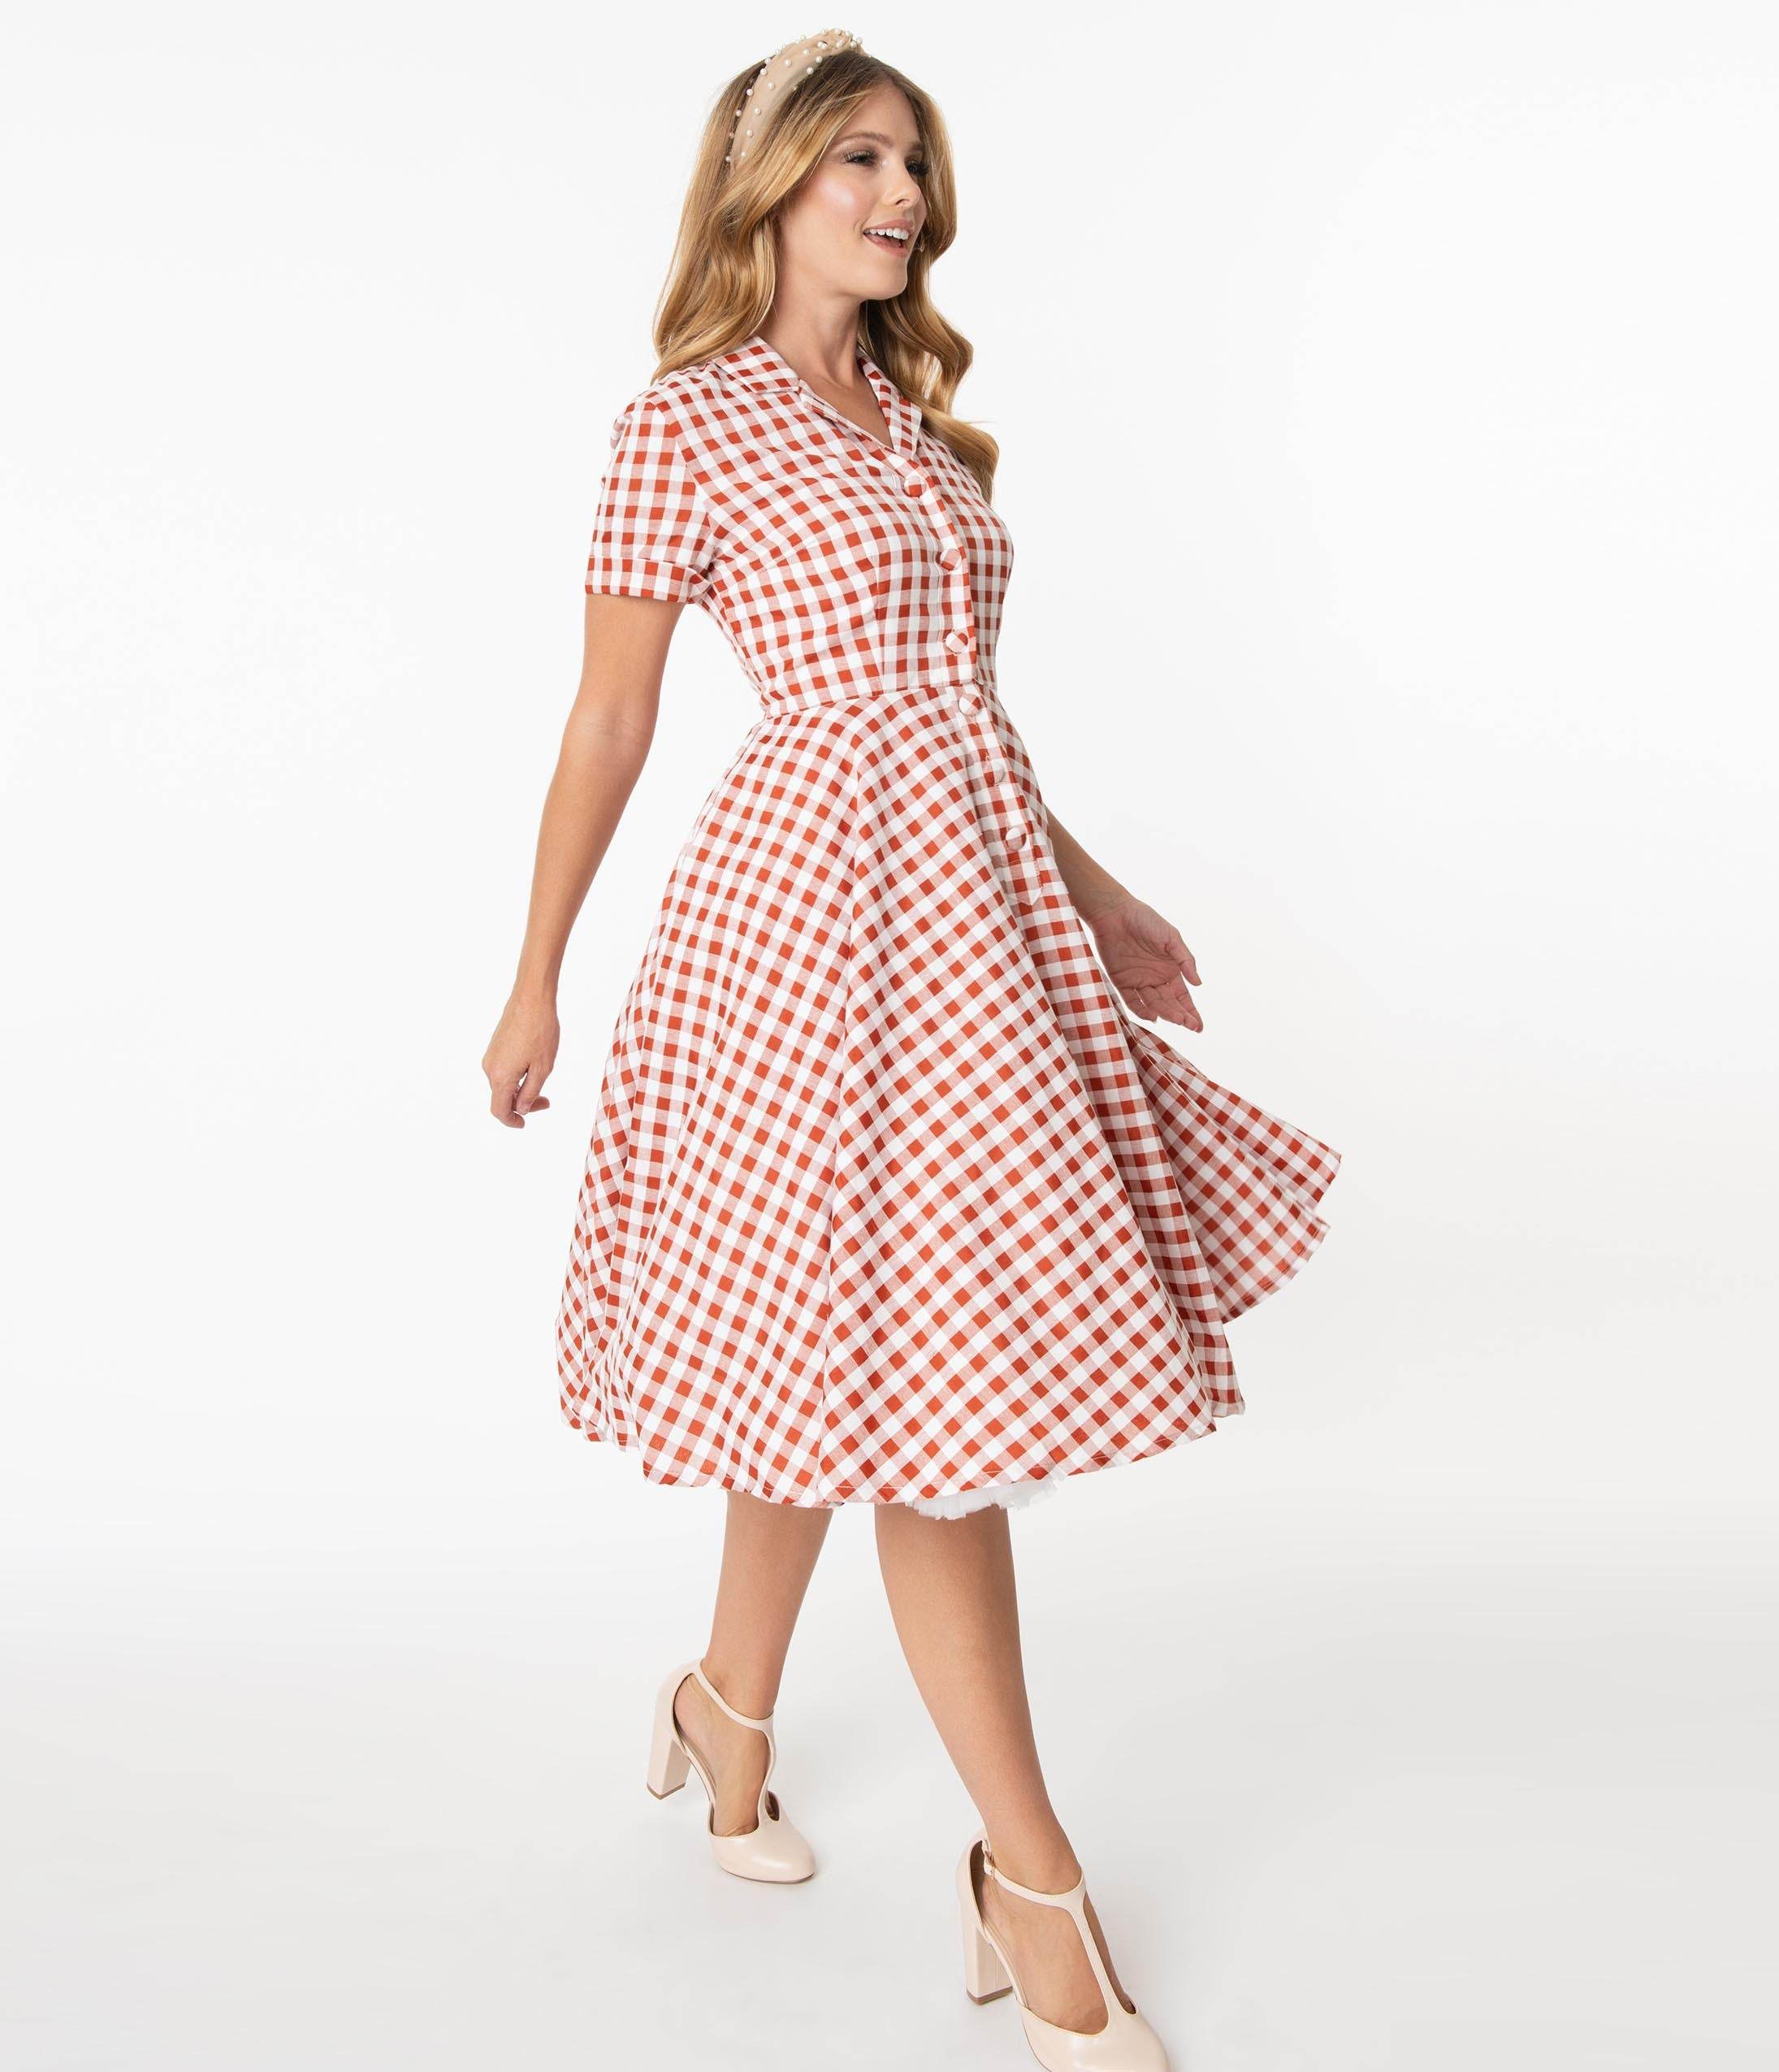 Swing Dance Dresses | Lindy Hop Dresses & Clothing 1950S Rust Red  White Gingham Caterina Swing Dress $88.00 AT vintagedancer.com